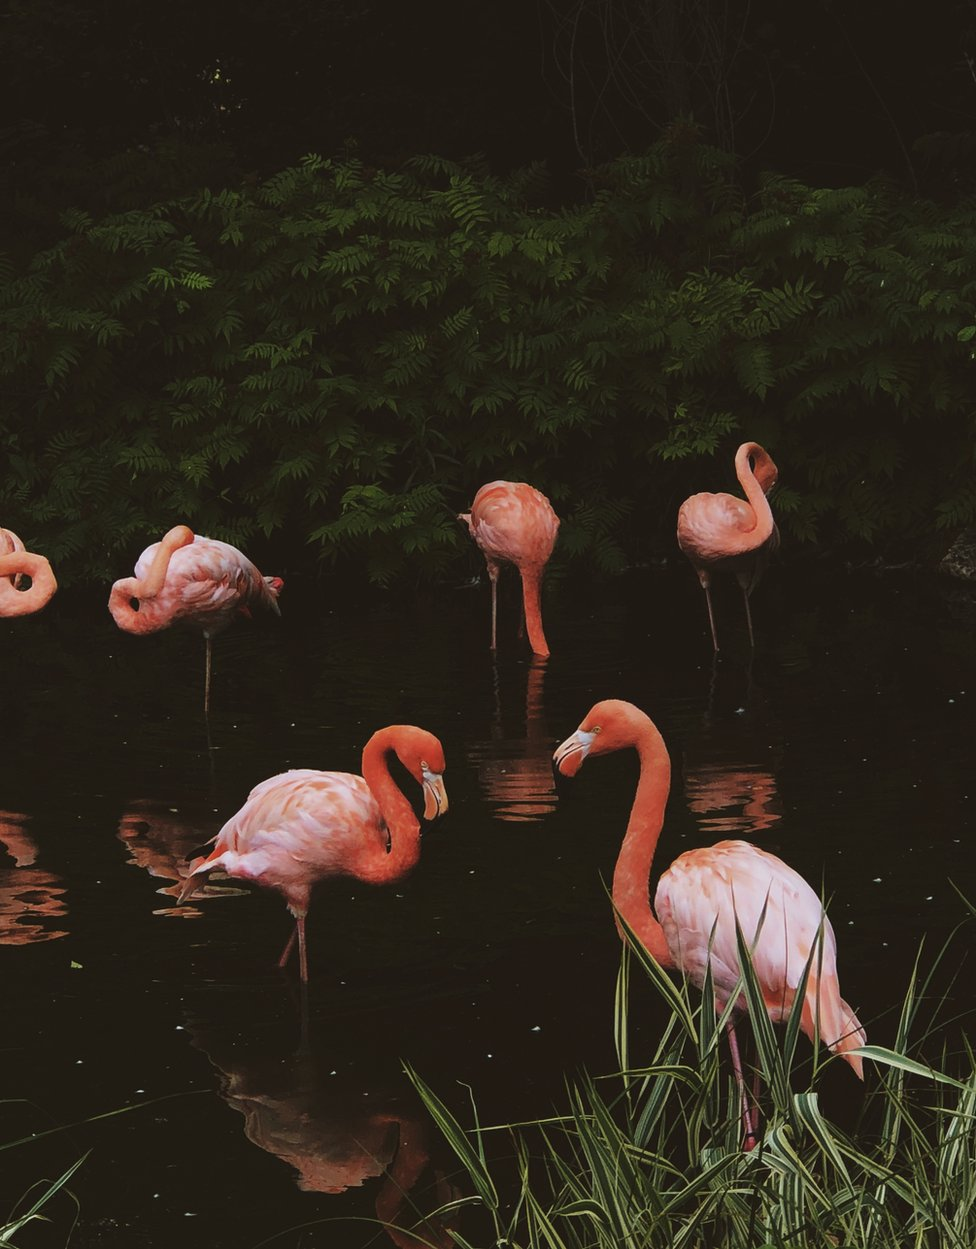 A group of flamingos in the water